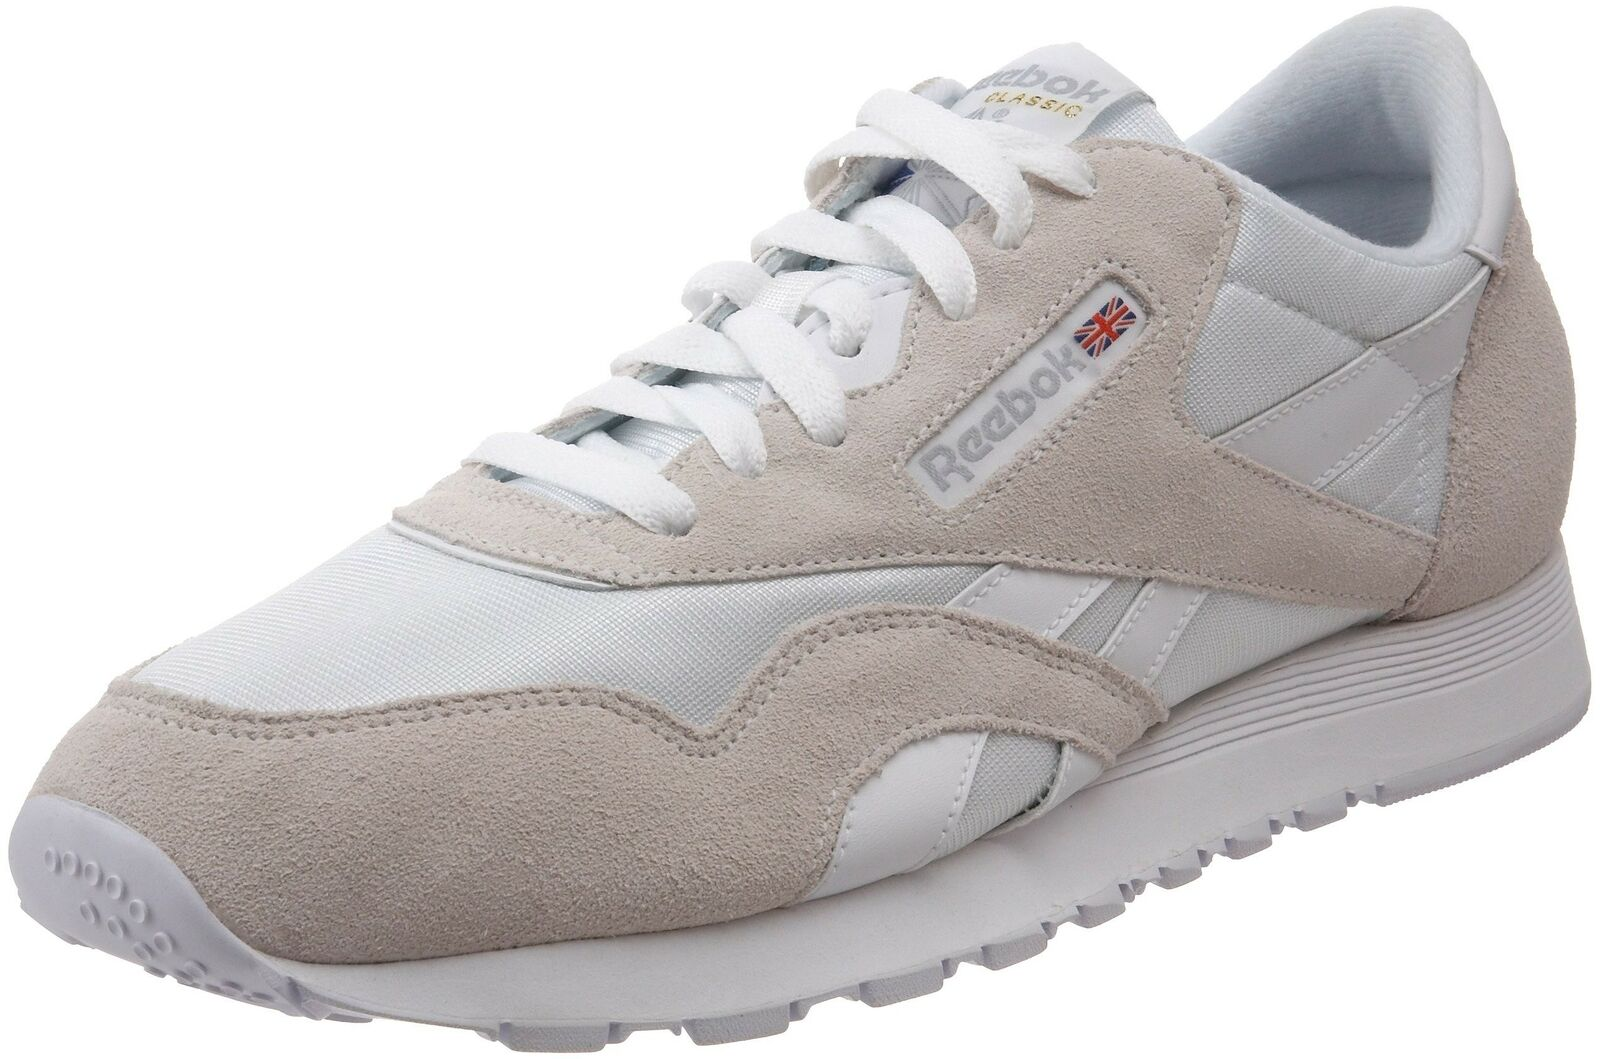 209cbd619bfe2 Classic Nylon Sneaker White Light 9 M US Reebok Grey znorme7553-Athletic  Shoes